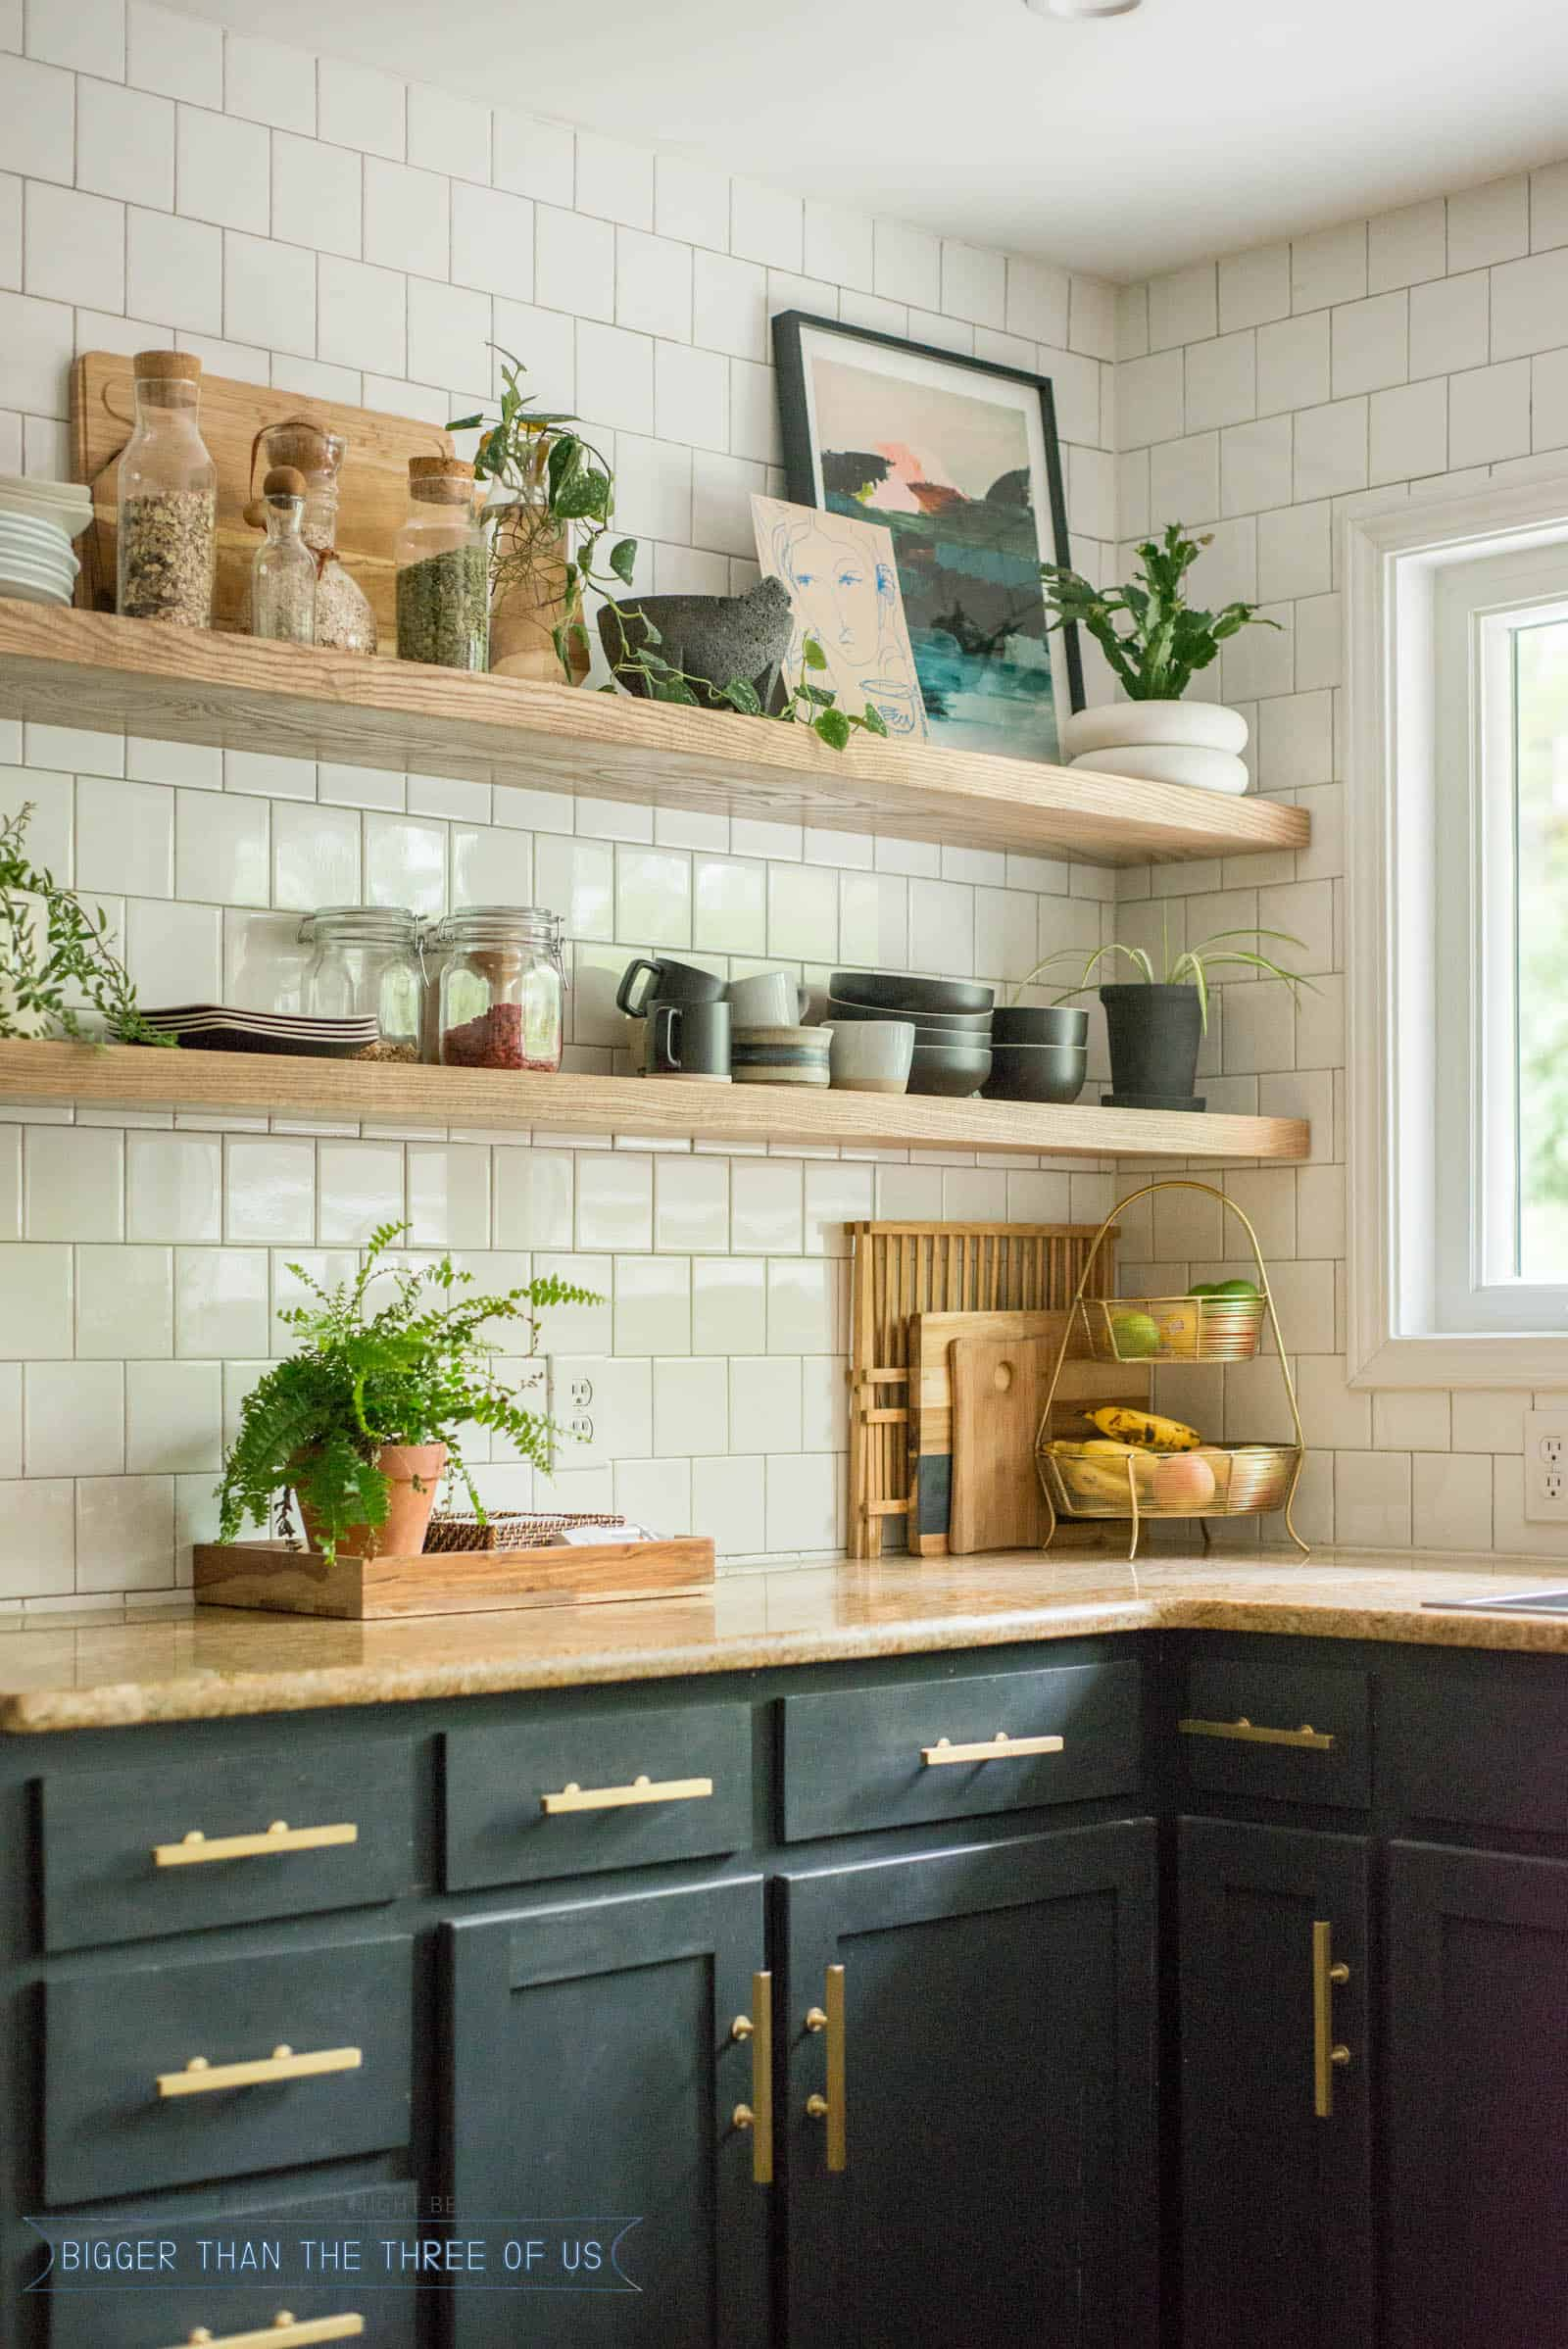 diy open shelving kitchen guide bigger than the three floating shelves that hold lot weight small shower corner shelf tile narrow book ledge industrial pipe bunnings cabinet